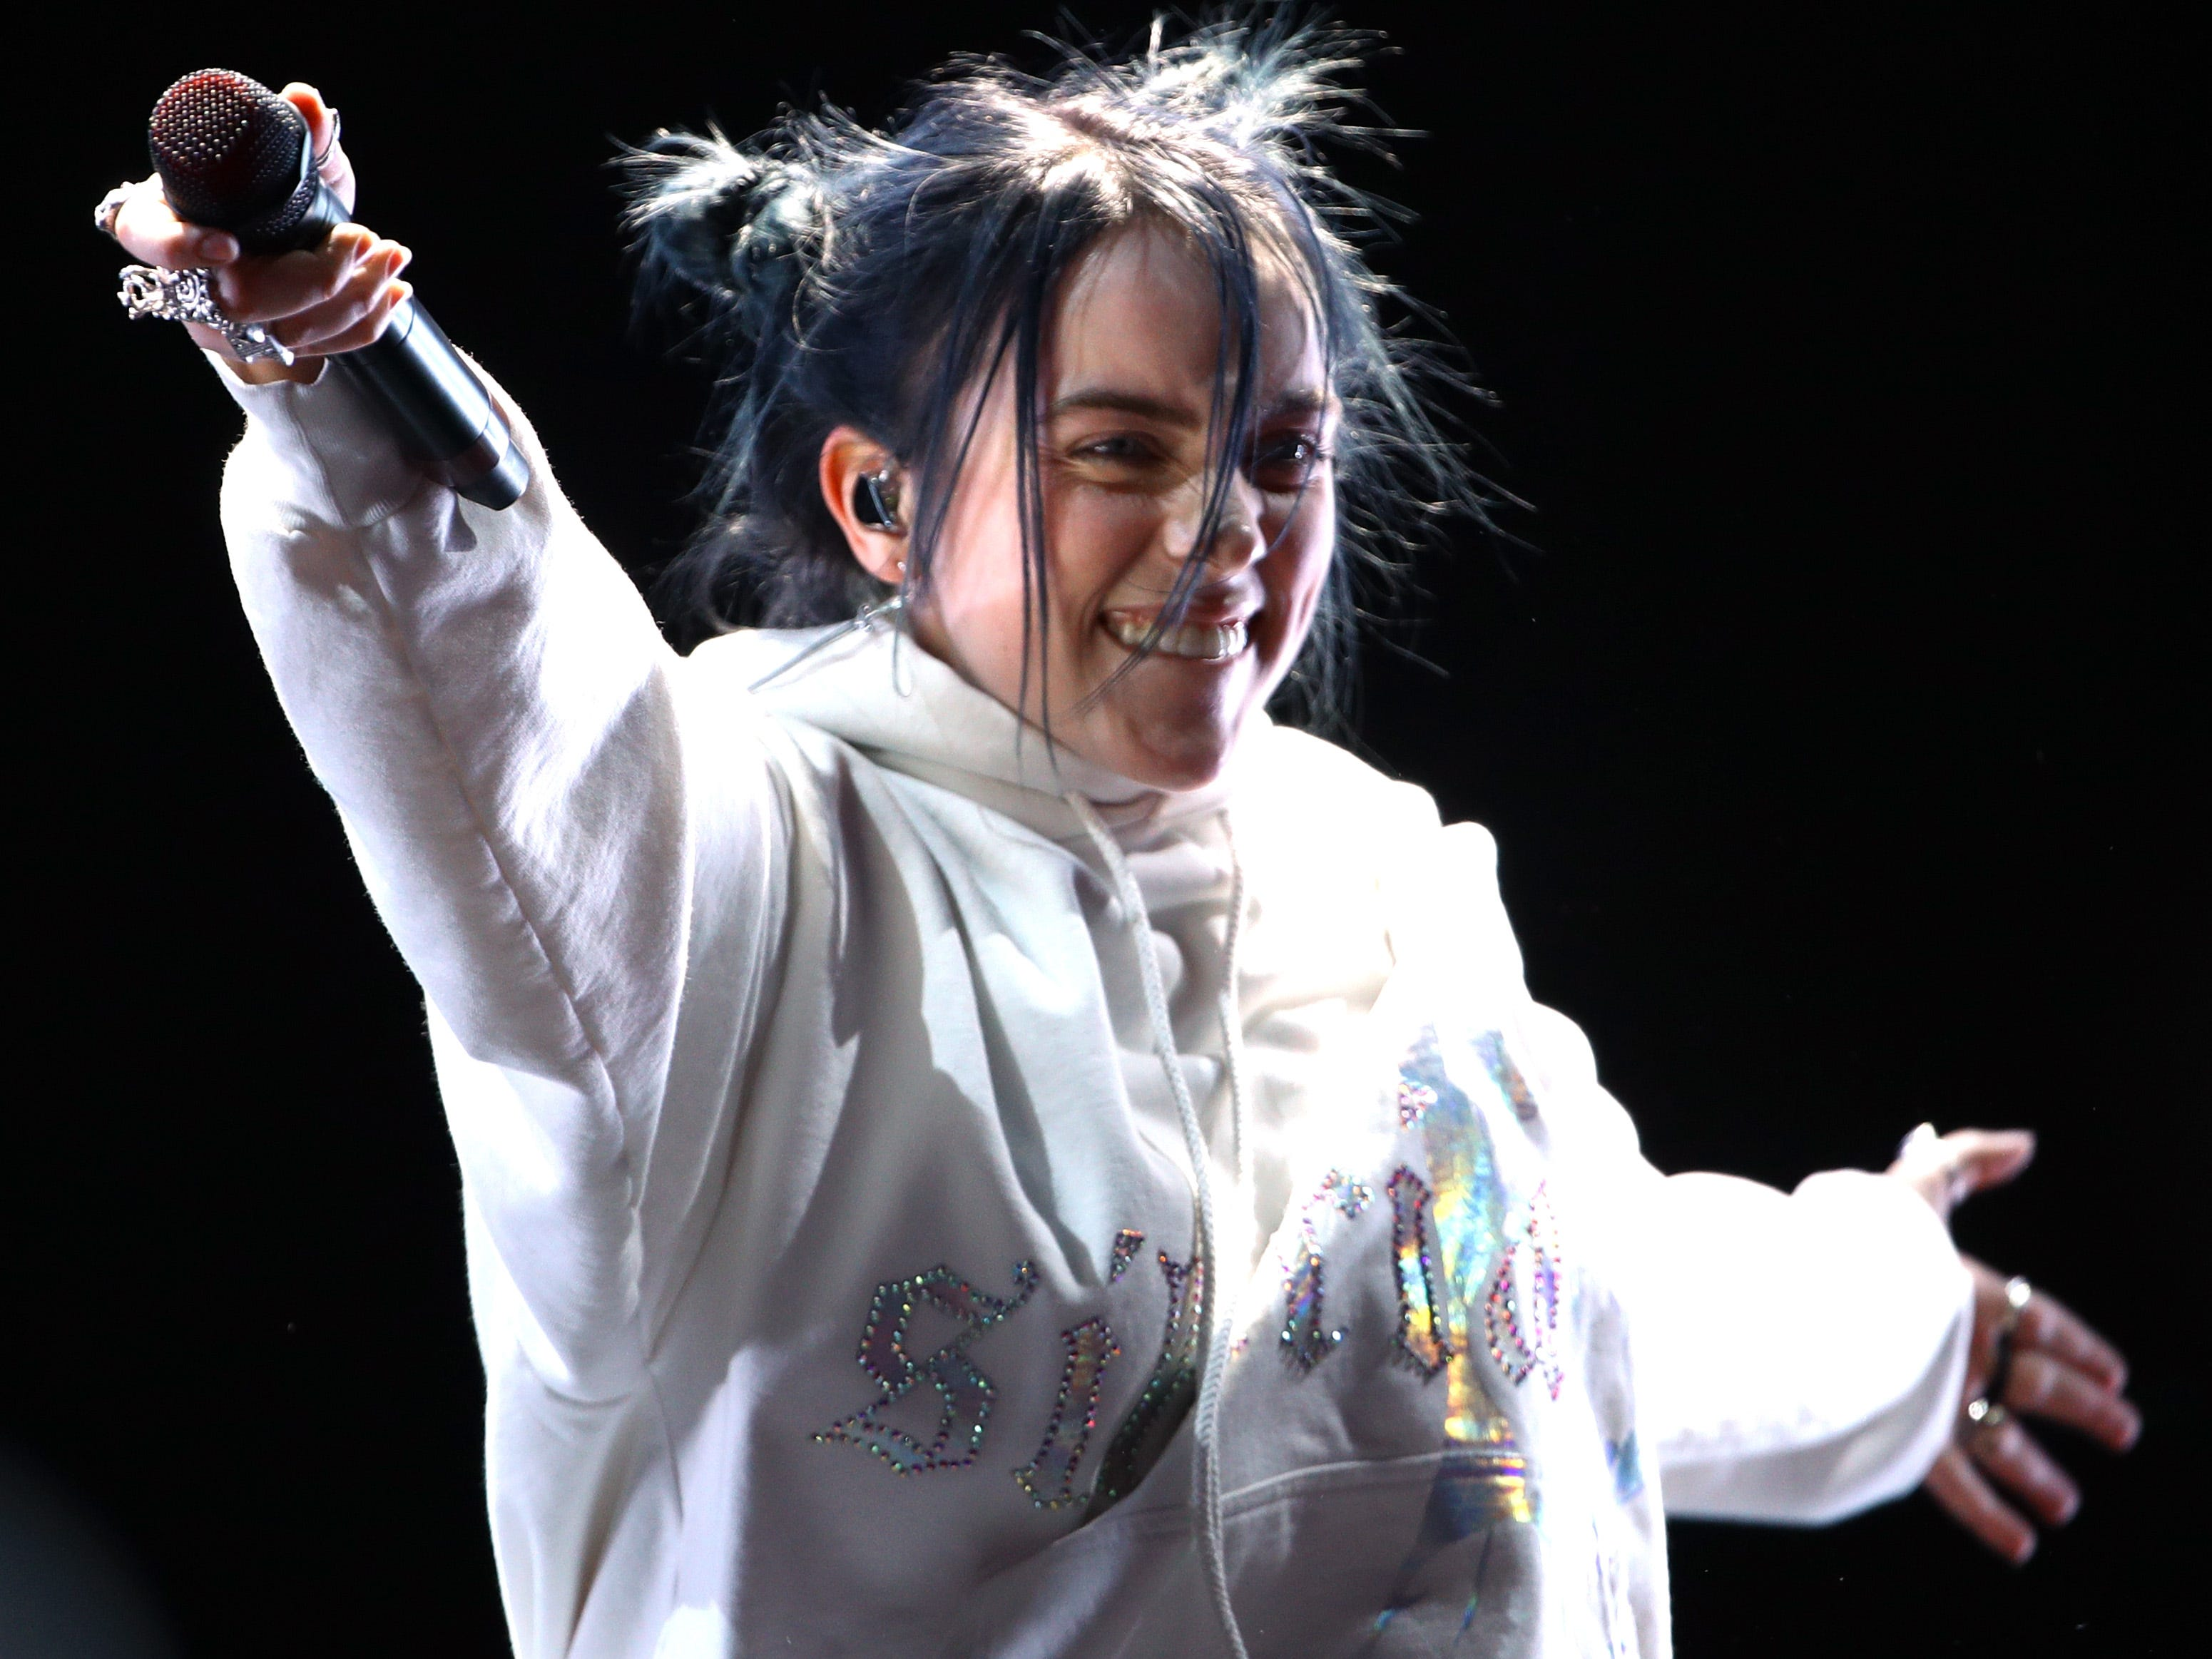 INDIO, CA - APRIL 13:  Billie Eilish performs at Outdoor Theatre during the 2019 Coachella Valley Music And Arts Festival on April 13, 2019 in Indio, California.  (Photo by Rich Fury/Getty Images for Coachella) ORG XMIT: 775277732 ORIG FILE ID: 1137210042